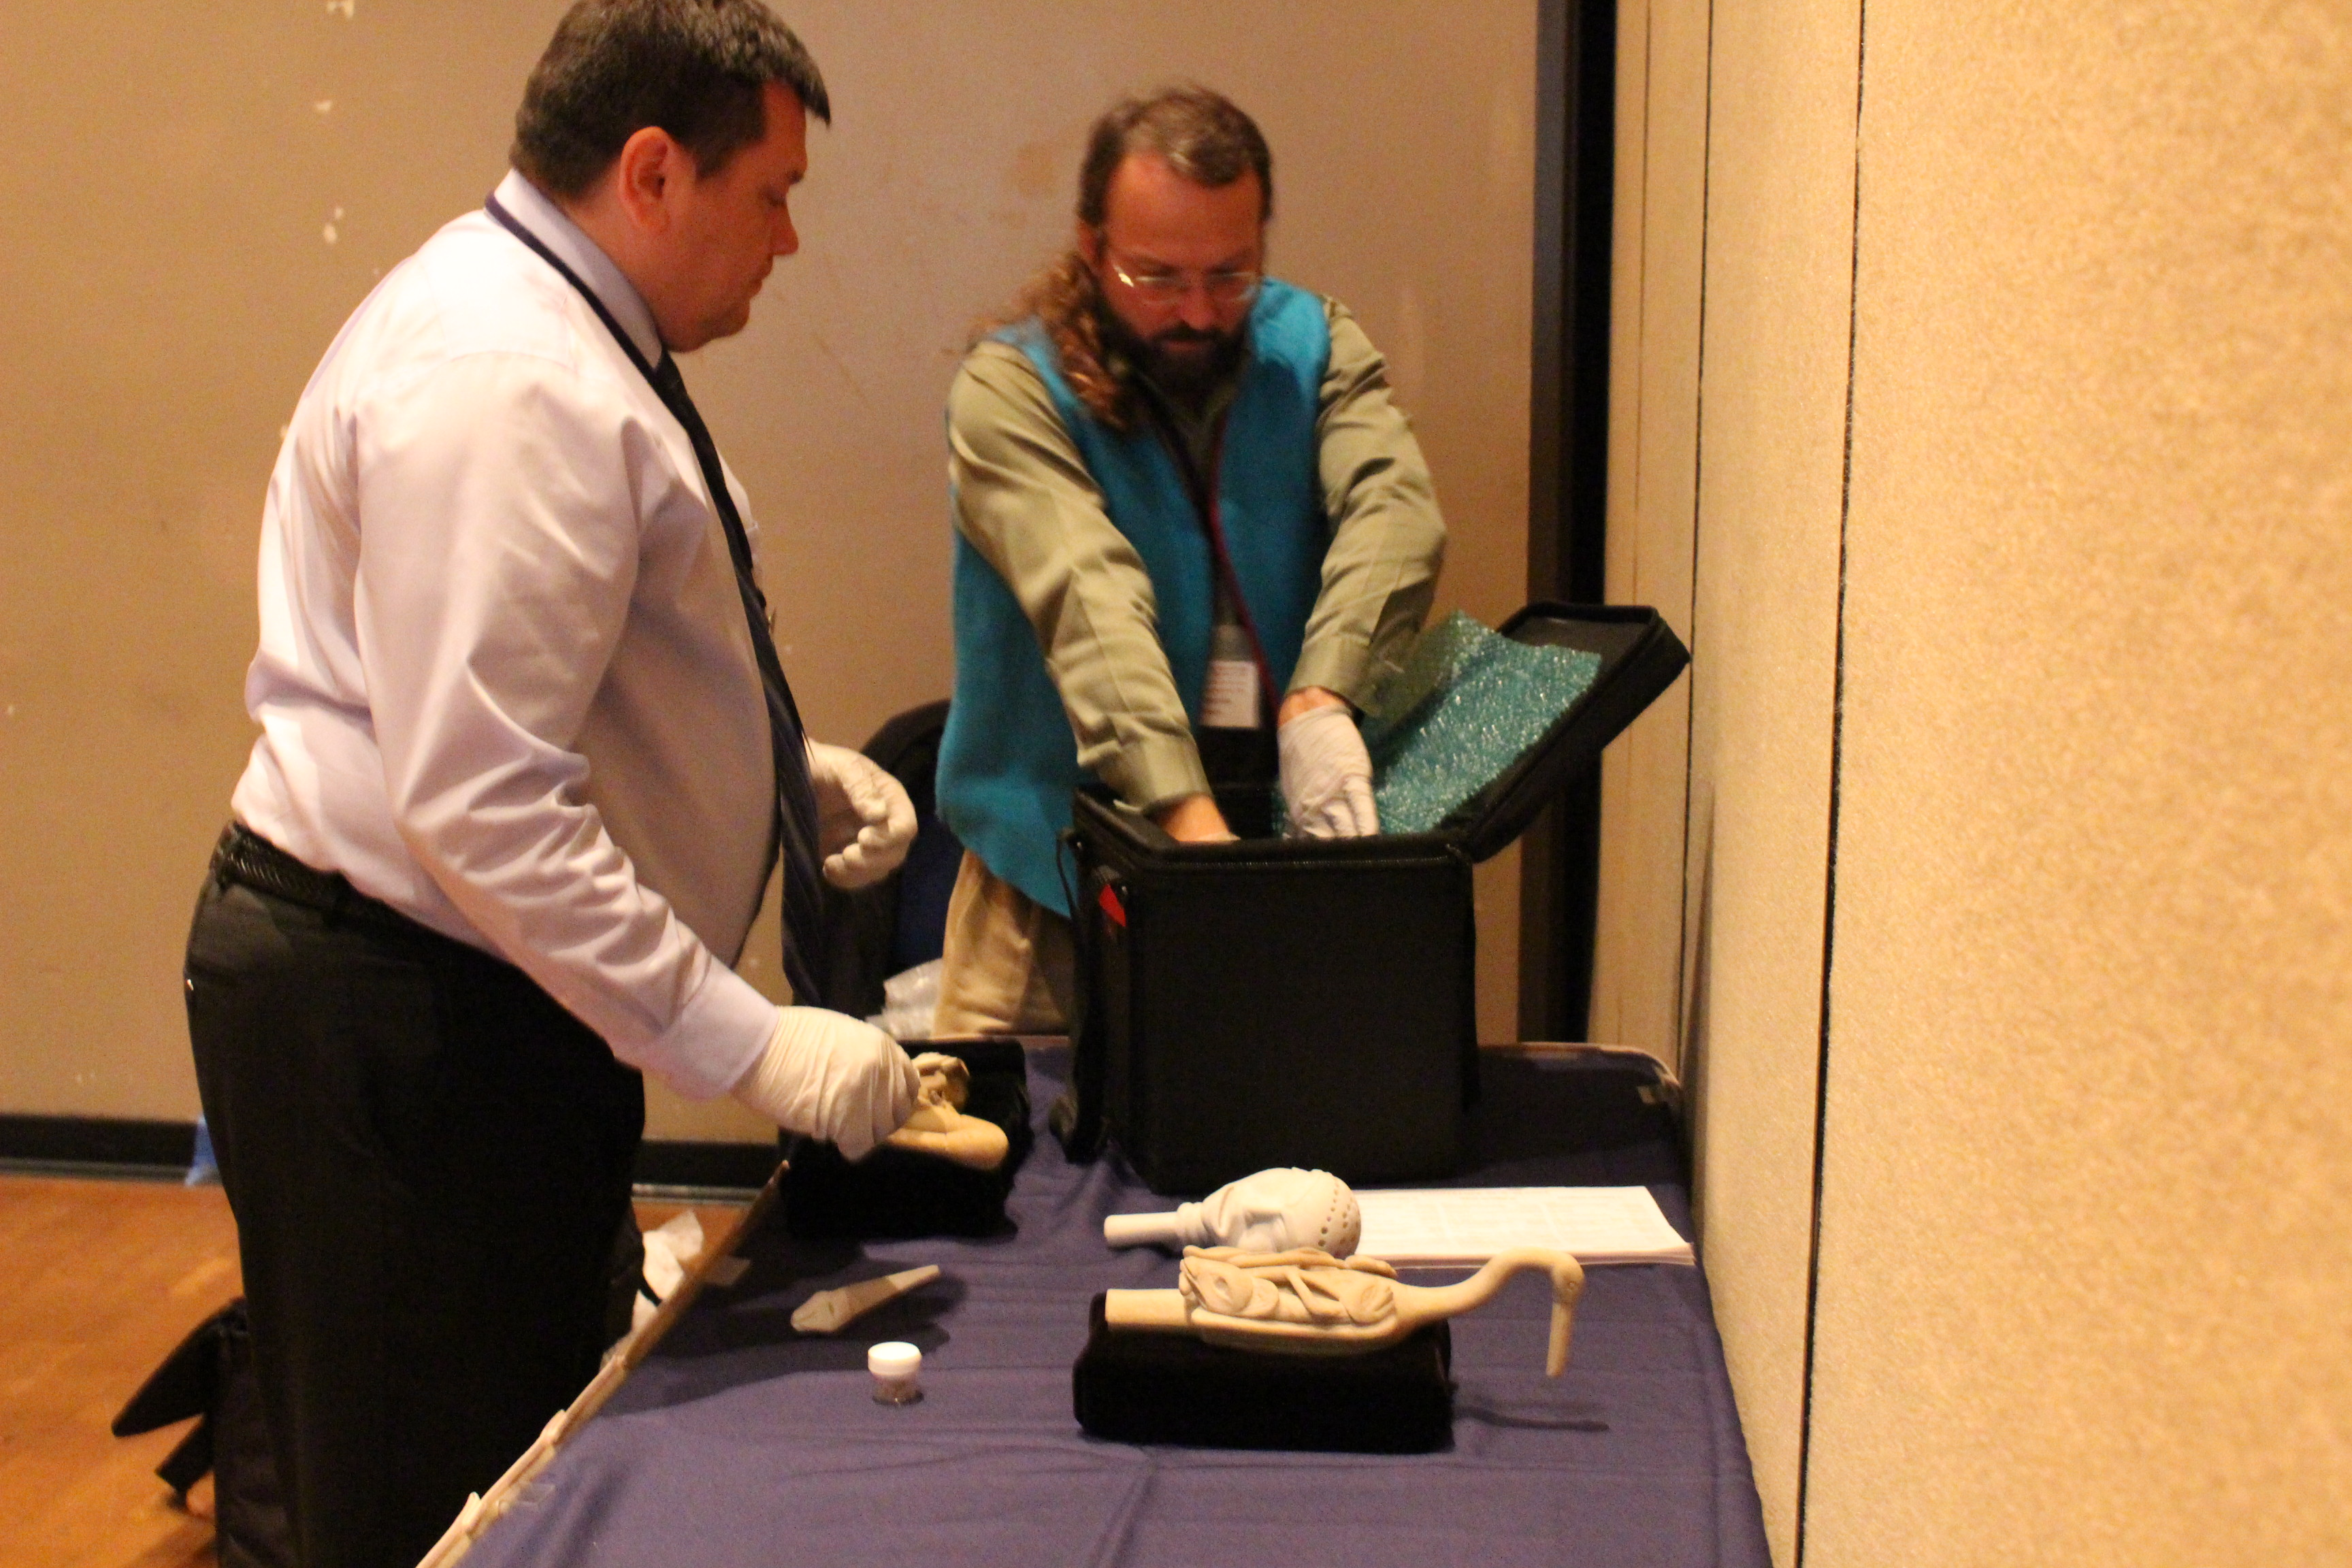 Eric Hollinger and Robert Starbard put the replicas away. KTOO obtained permission to photograph the objects. (Photo by Elizabeth Jenkins/KTOO)